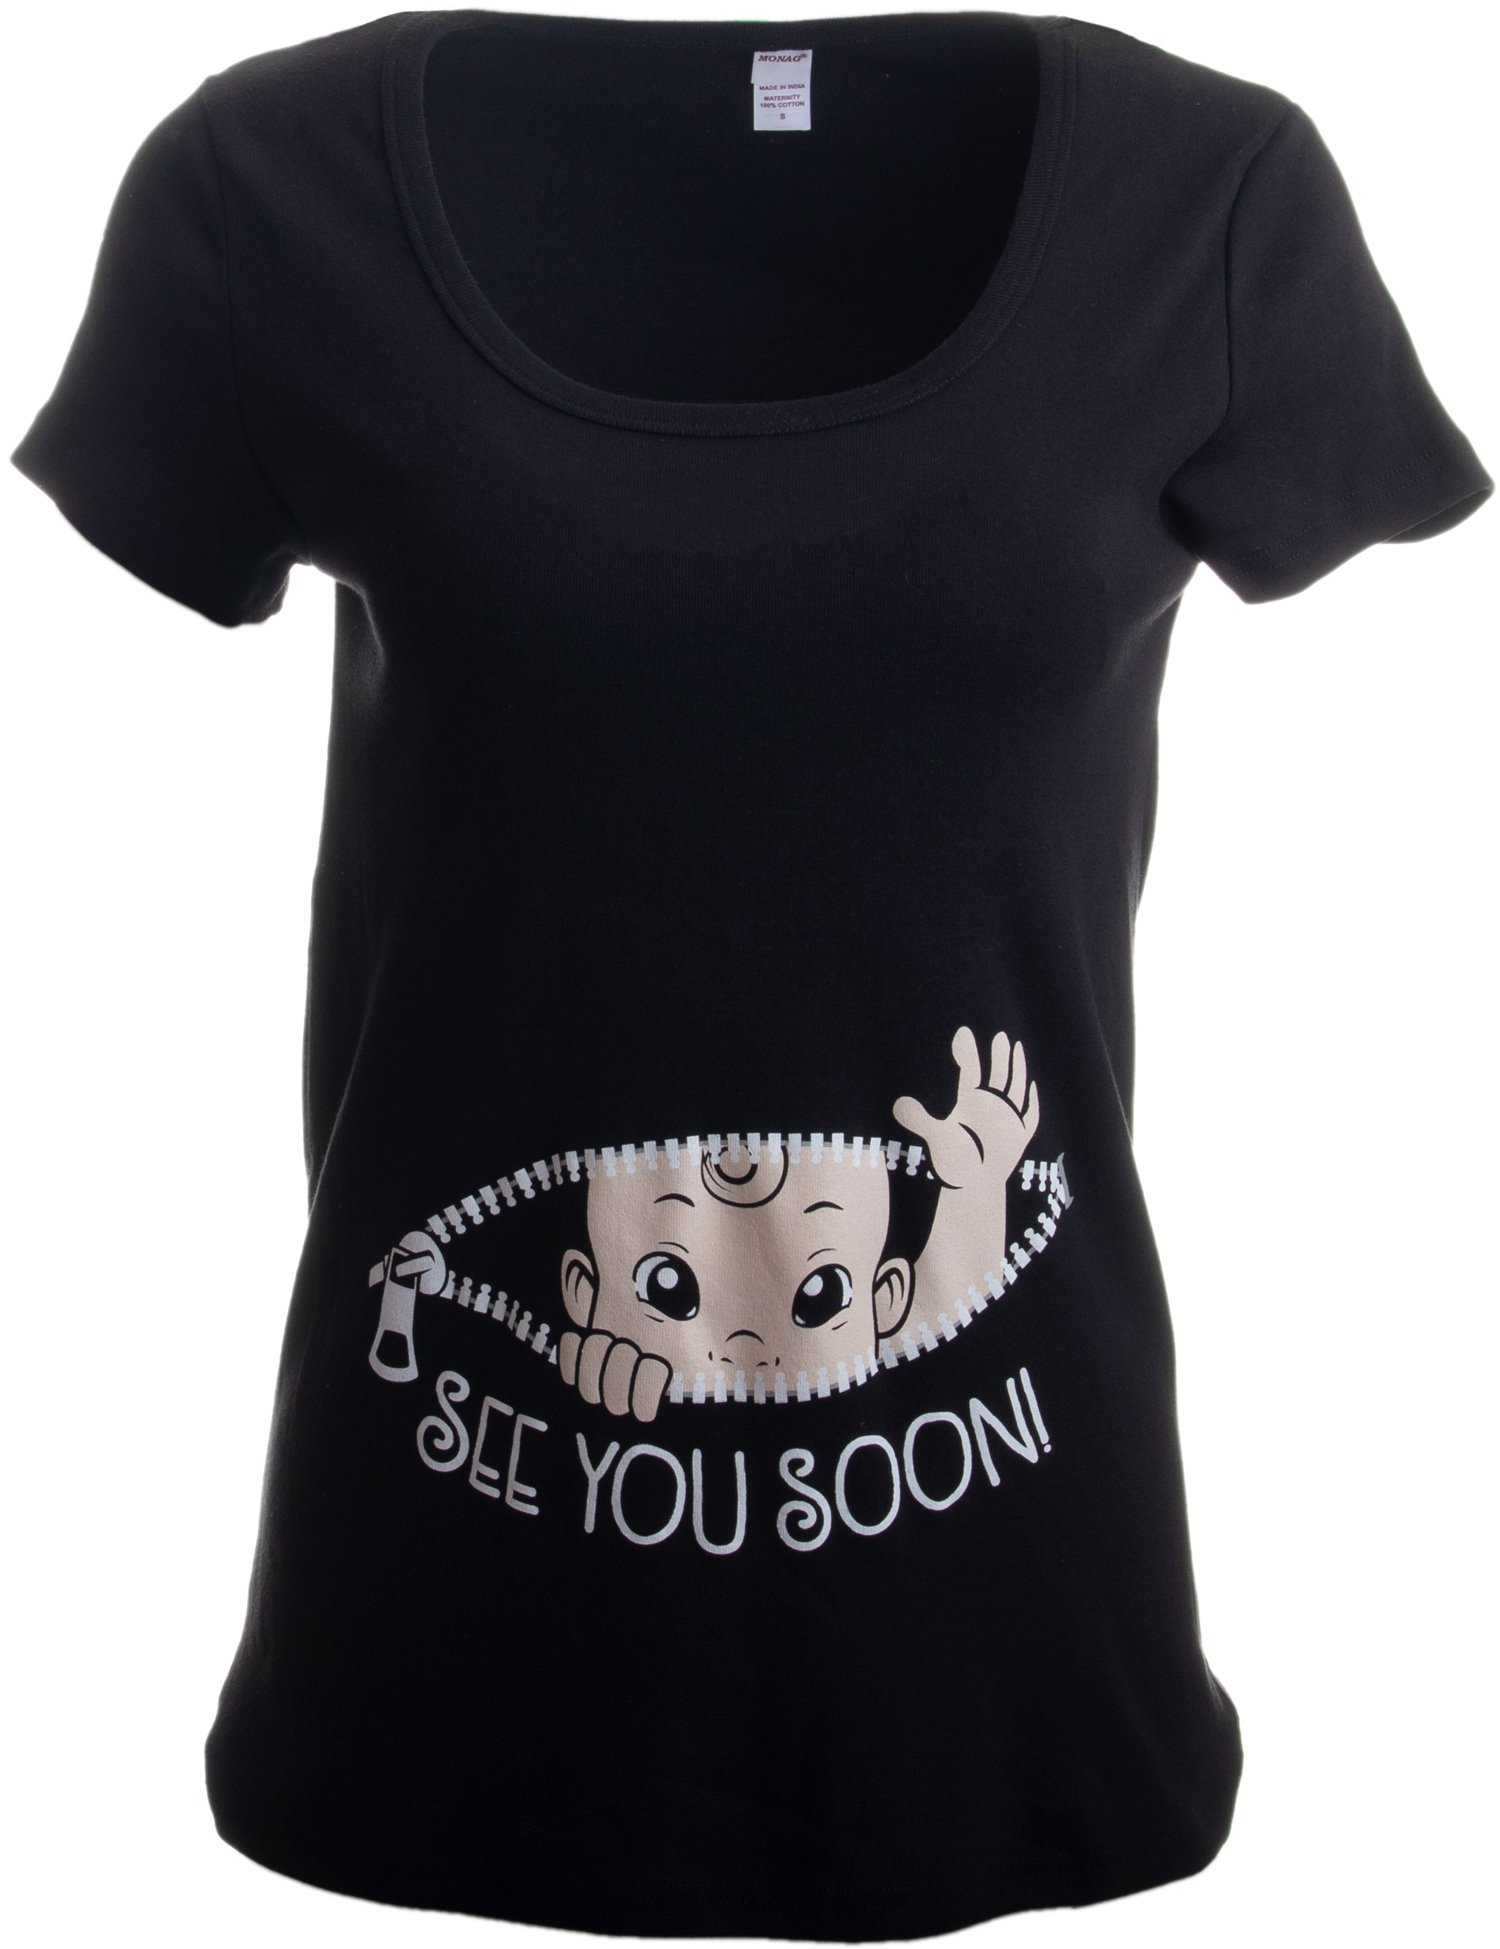 568e87c20 Cute Funny Maternity Pregnancy Baby Scoop Neck Top T-Shirt for Pregnant  Women-(Matern, S) Black